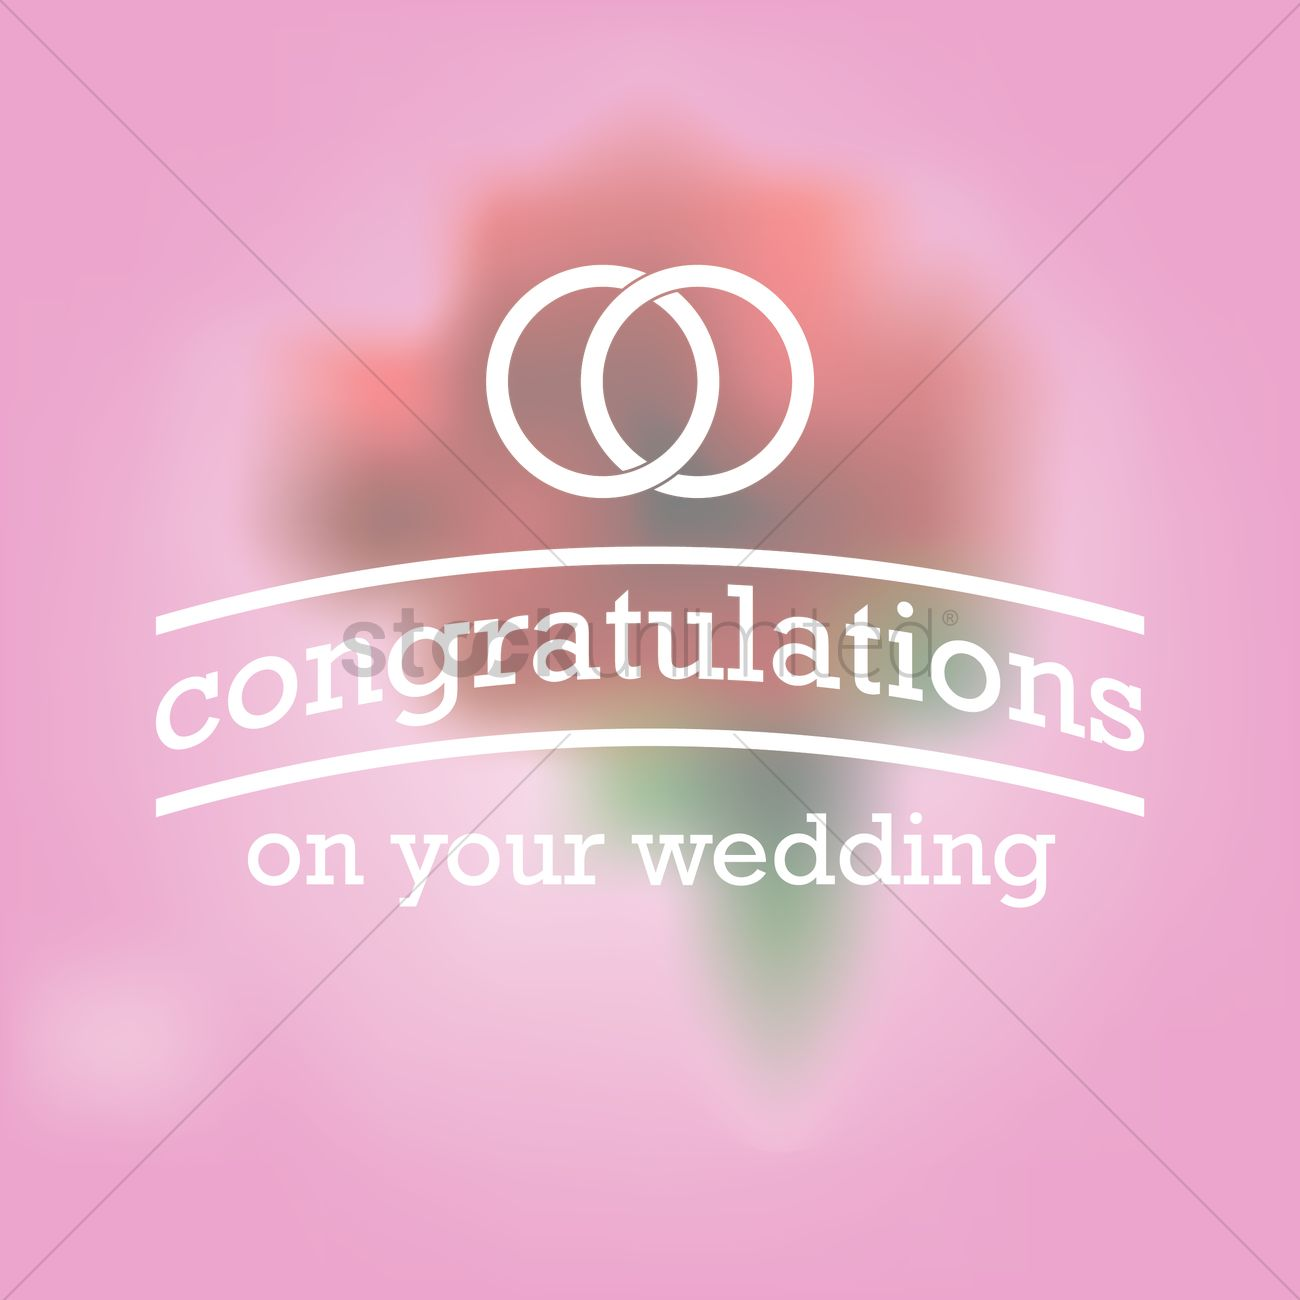 congratulations on your wedding greeting